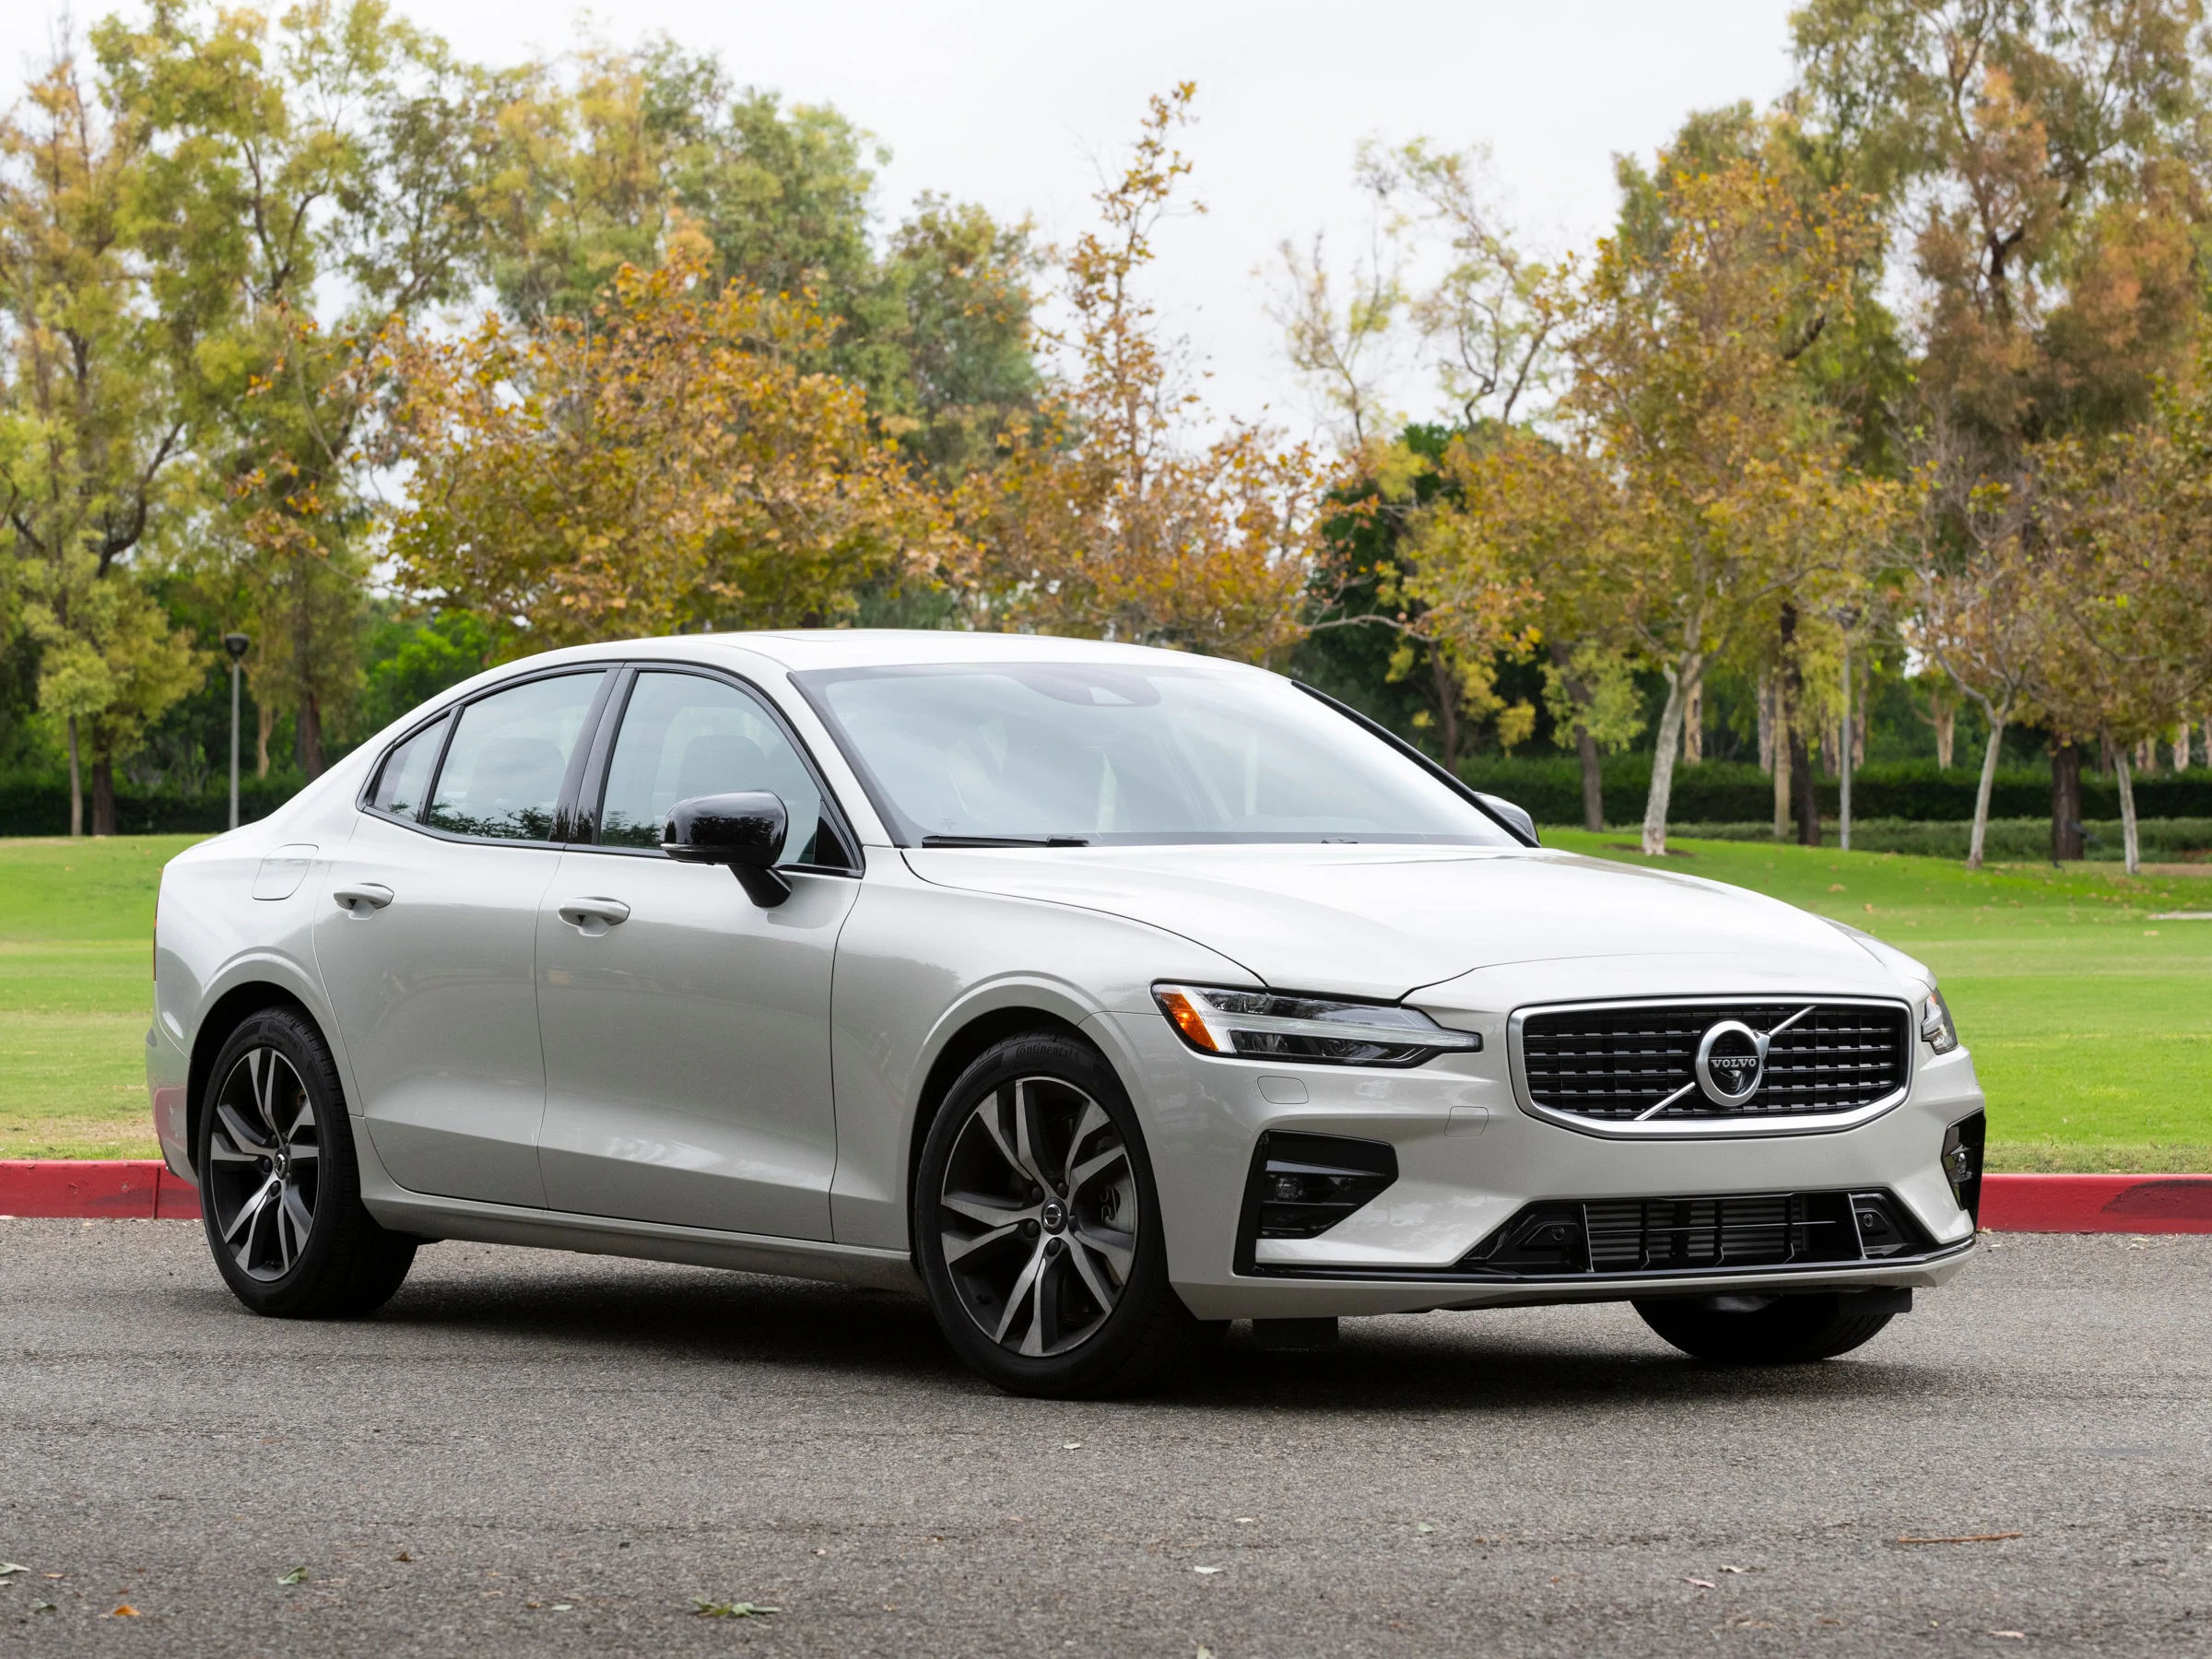 2021 Volvo S60 to launch in Q1 2021